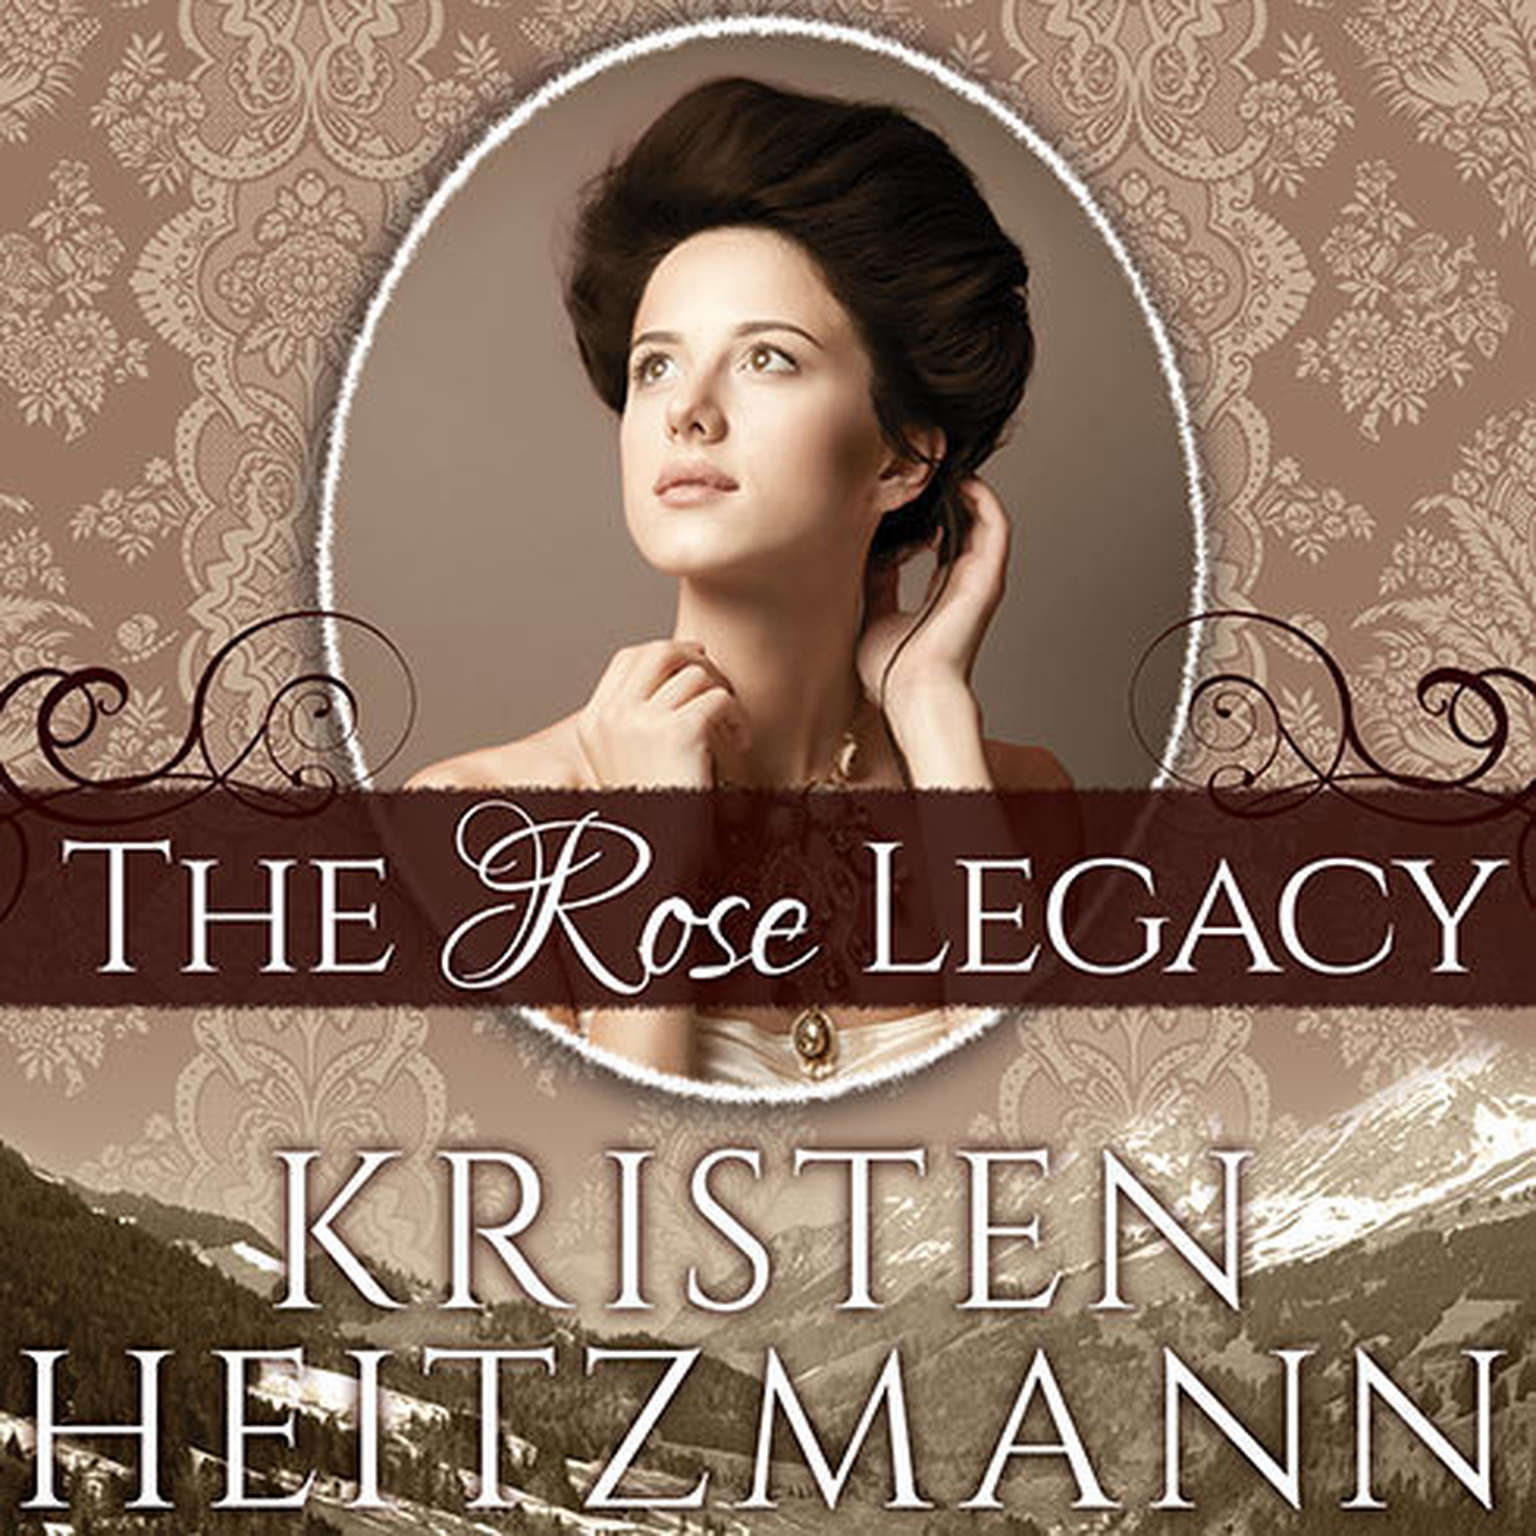 Printable The Rose Legacy Audiobook Cover Art